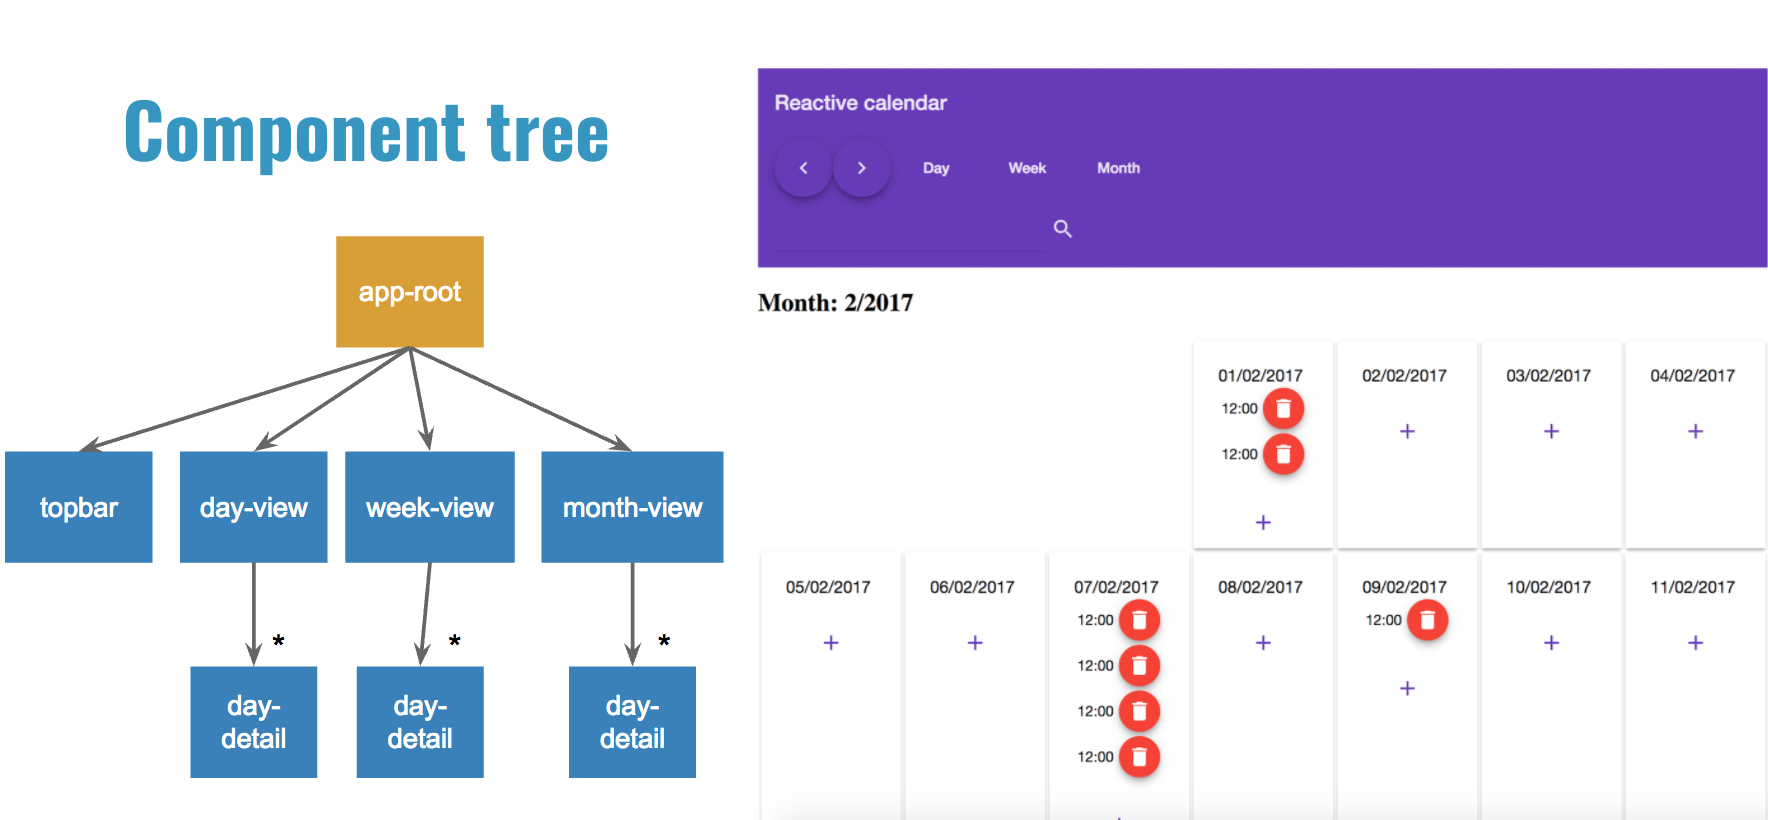 The component tree